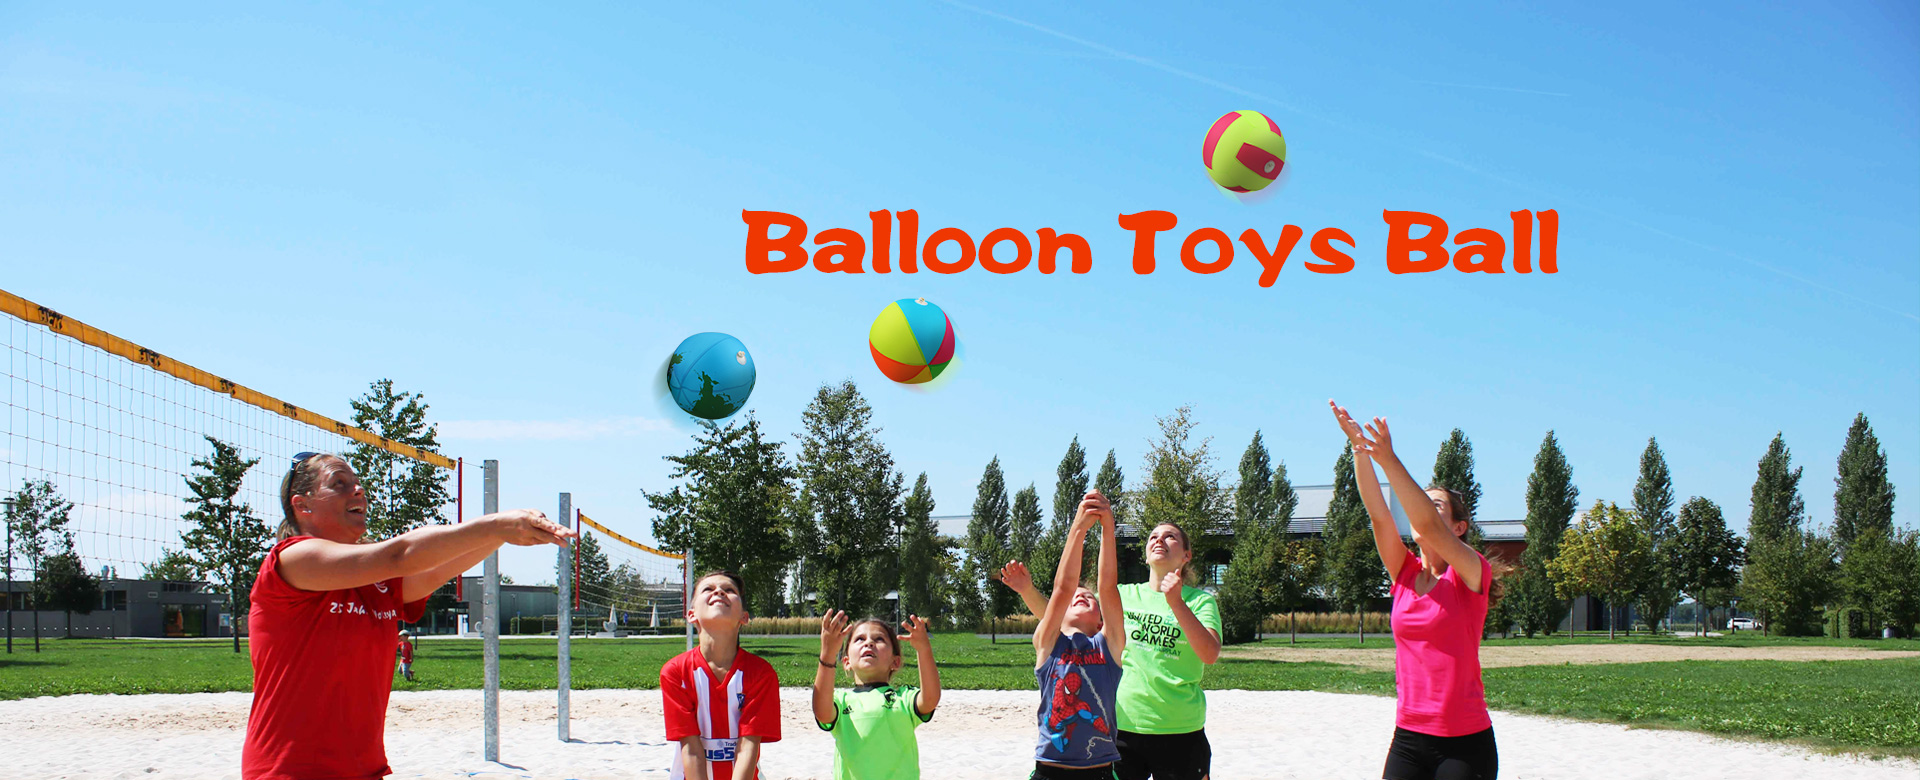 Balloon Toys Ball